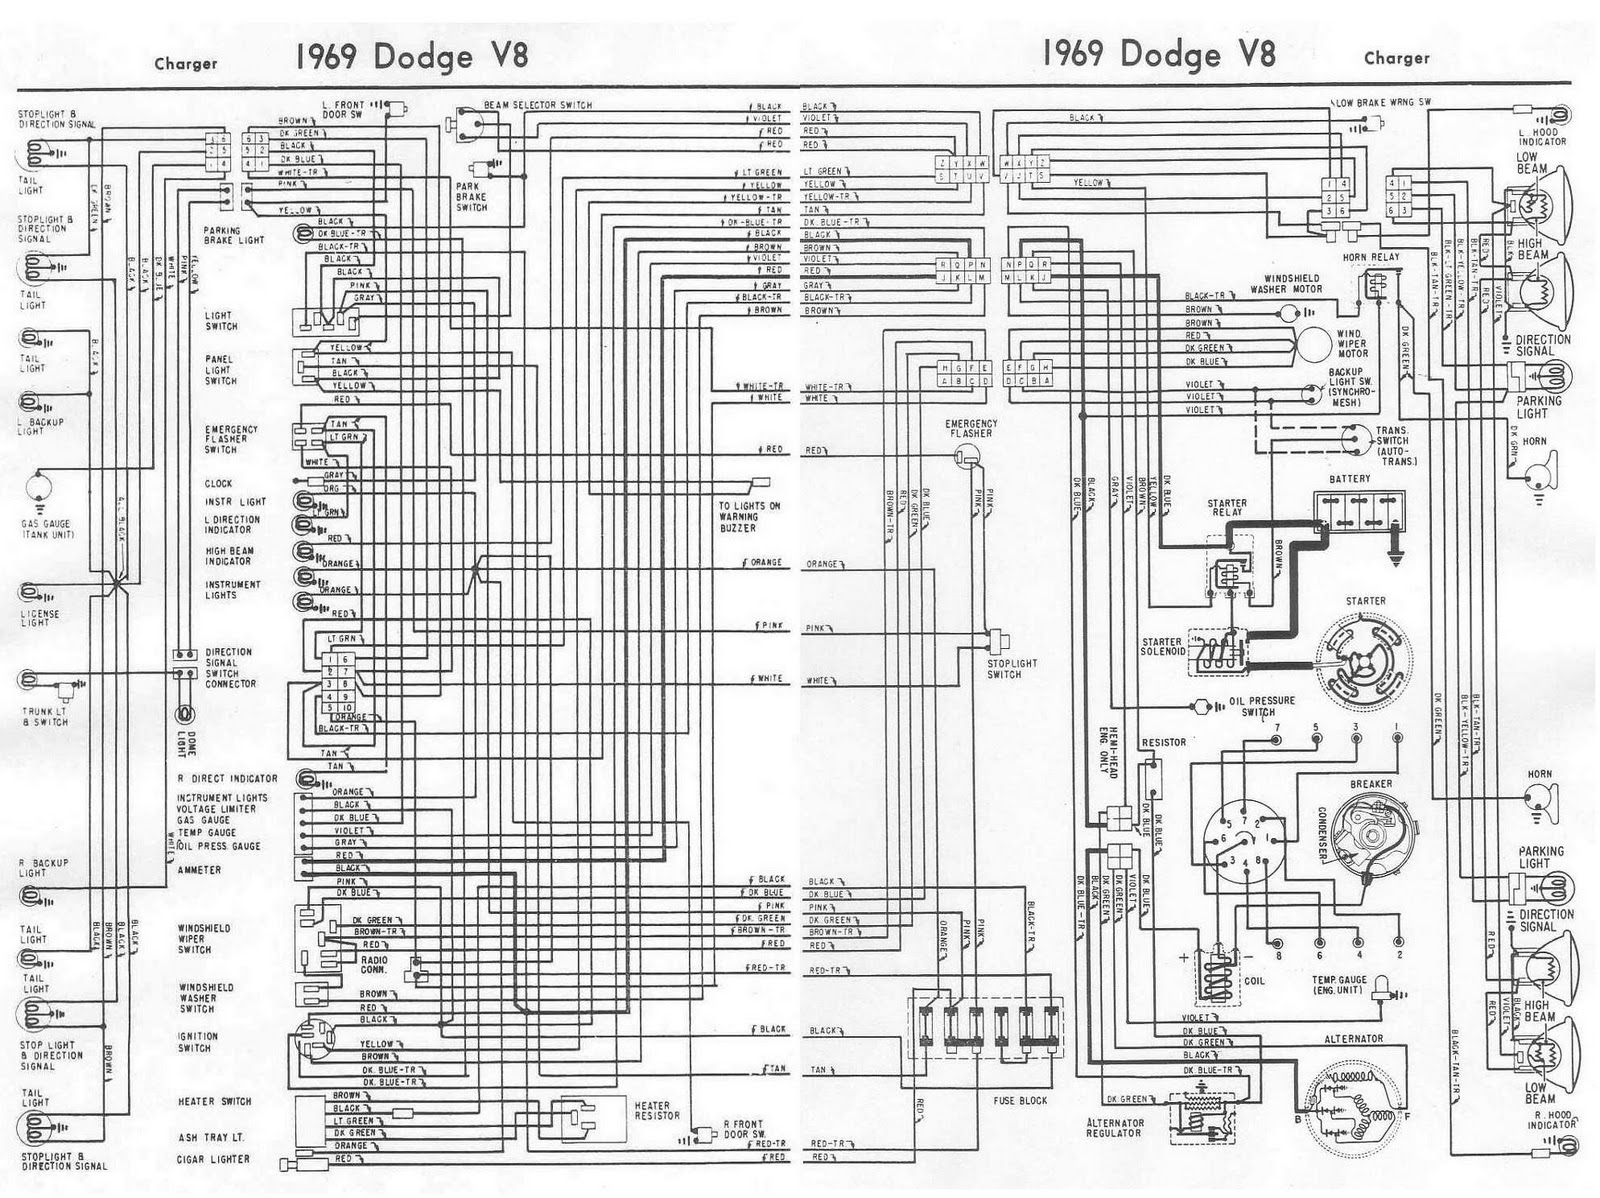 1969+Dodge+Charger+V8+Complete+Wiring+Diagram?resize=665%2C498 1969 f100 ignition wiring diagram 1969 f100 ignition switch, 86 1969 ford f100 wiring diagram at readyjetset.co